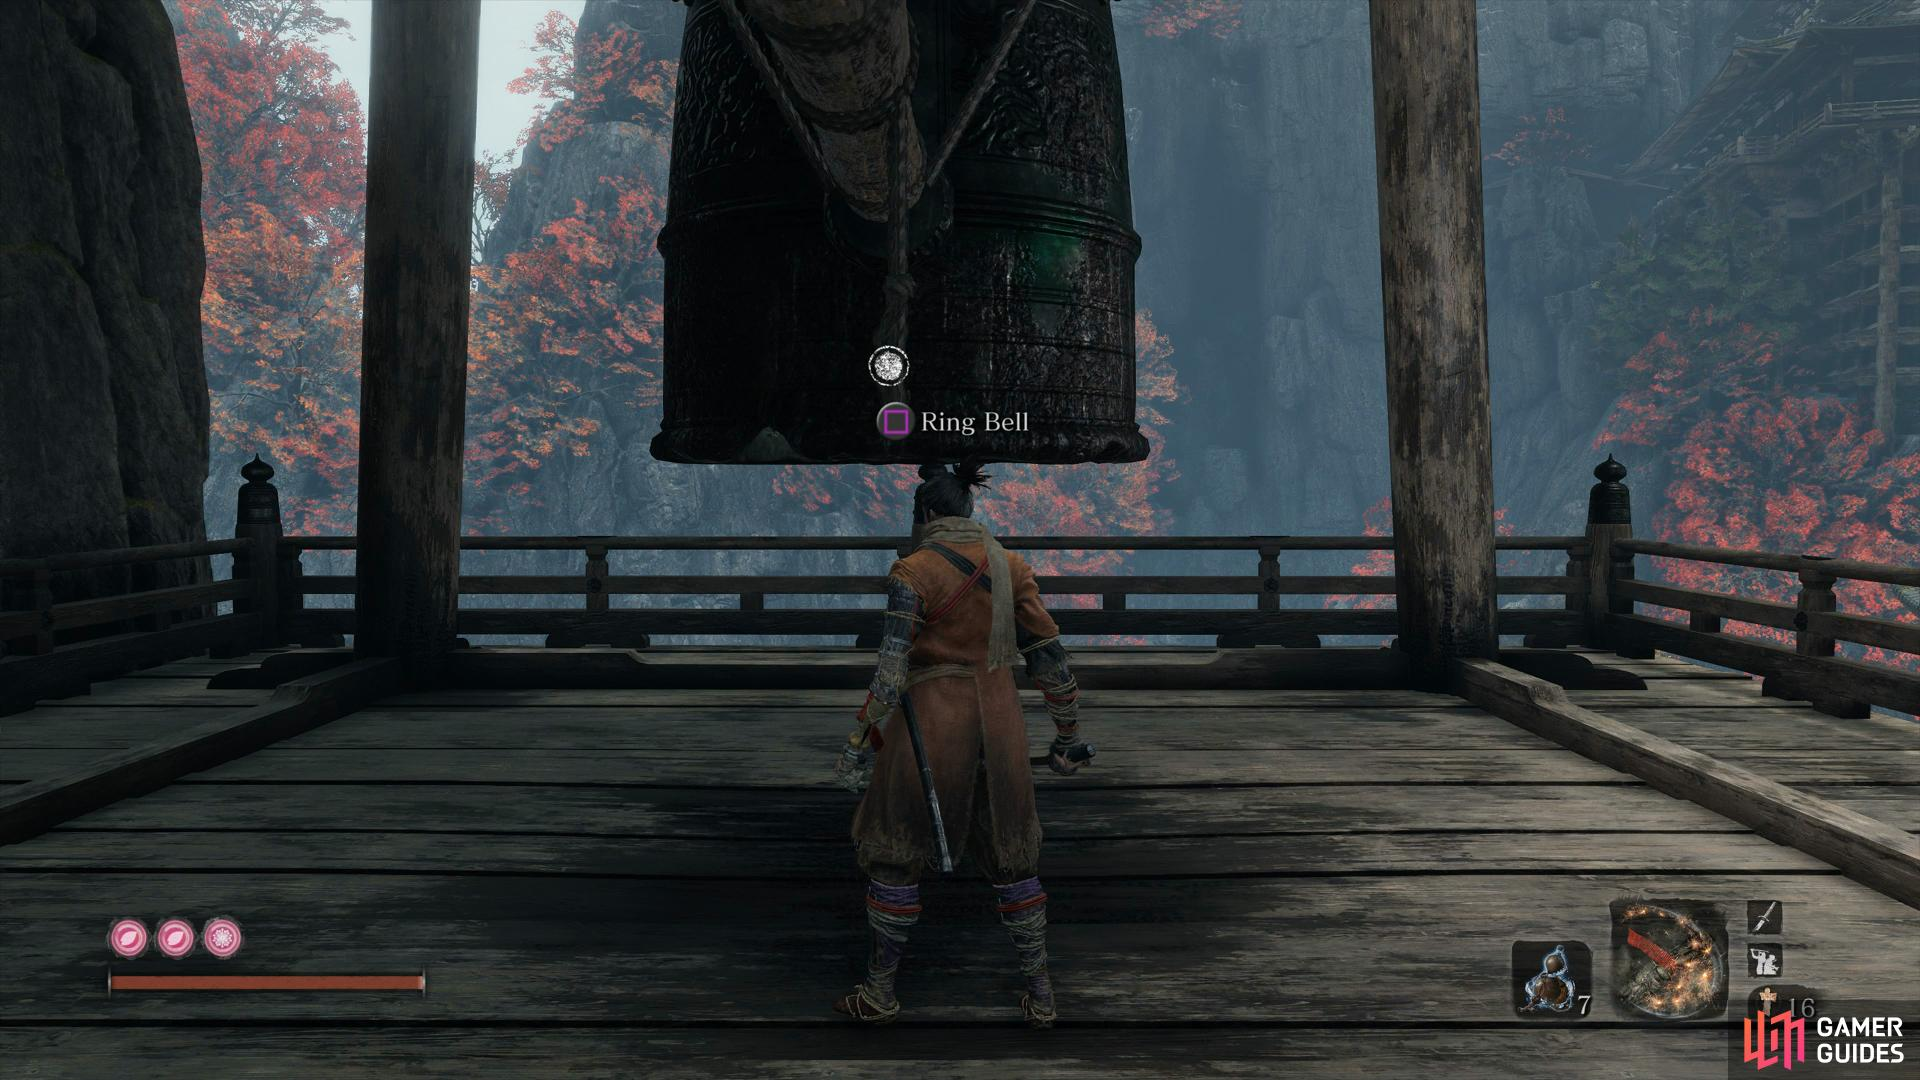 Ringing this bell will increase the difficulty of the enemies